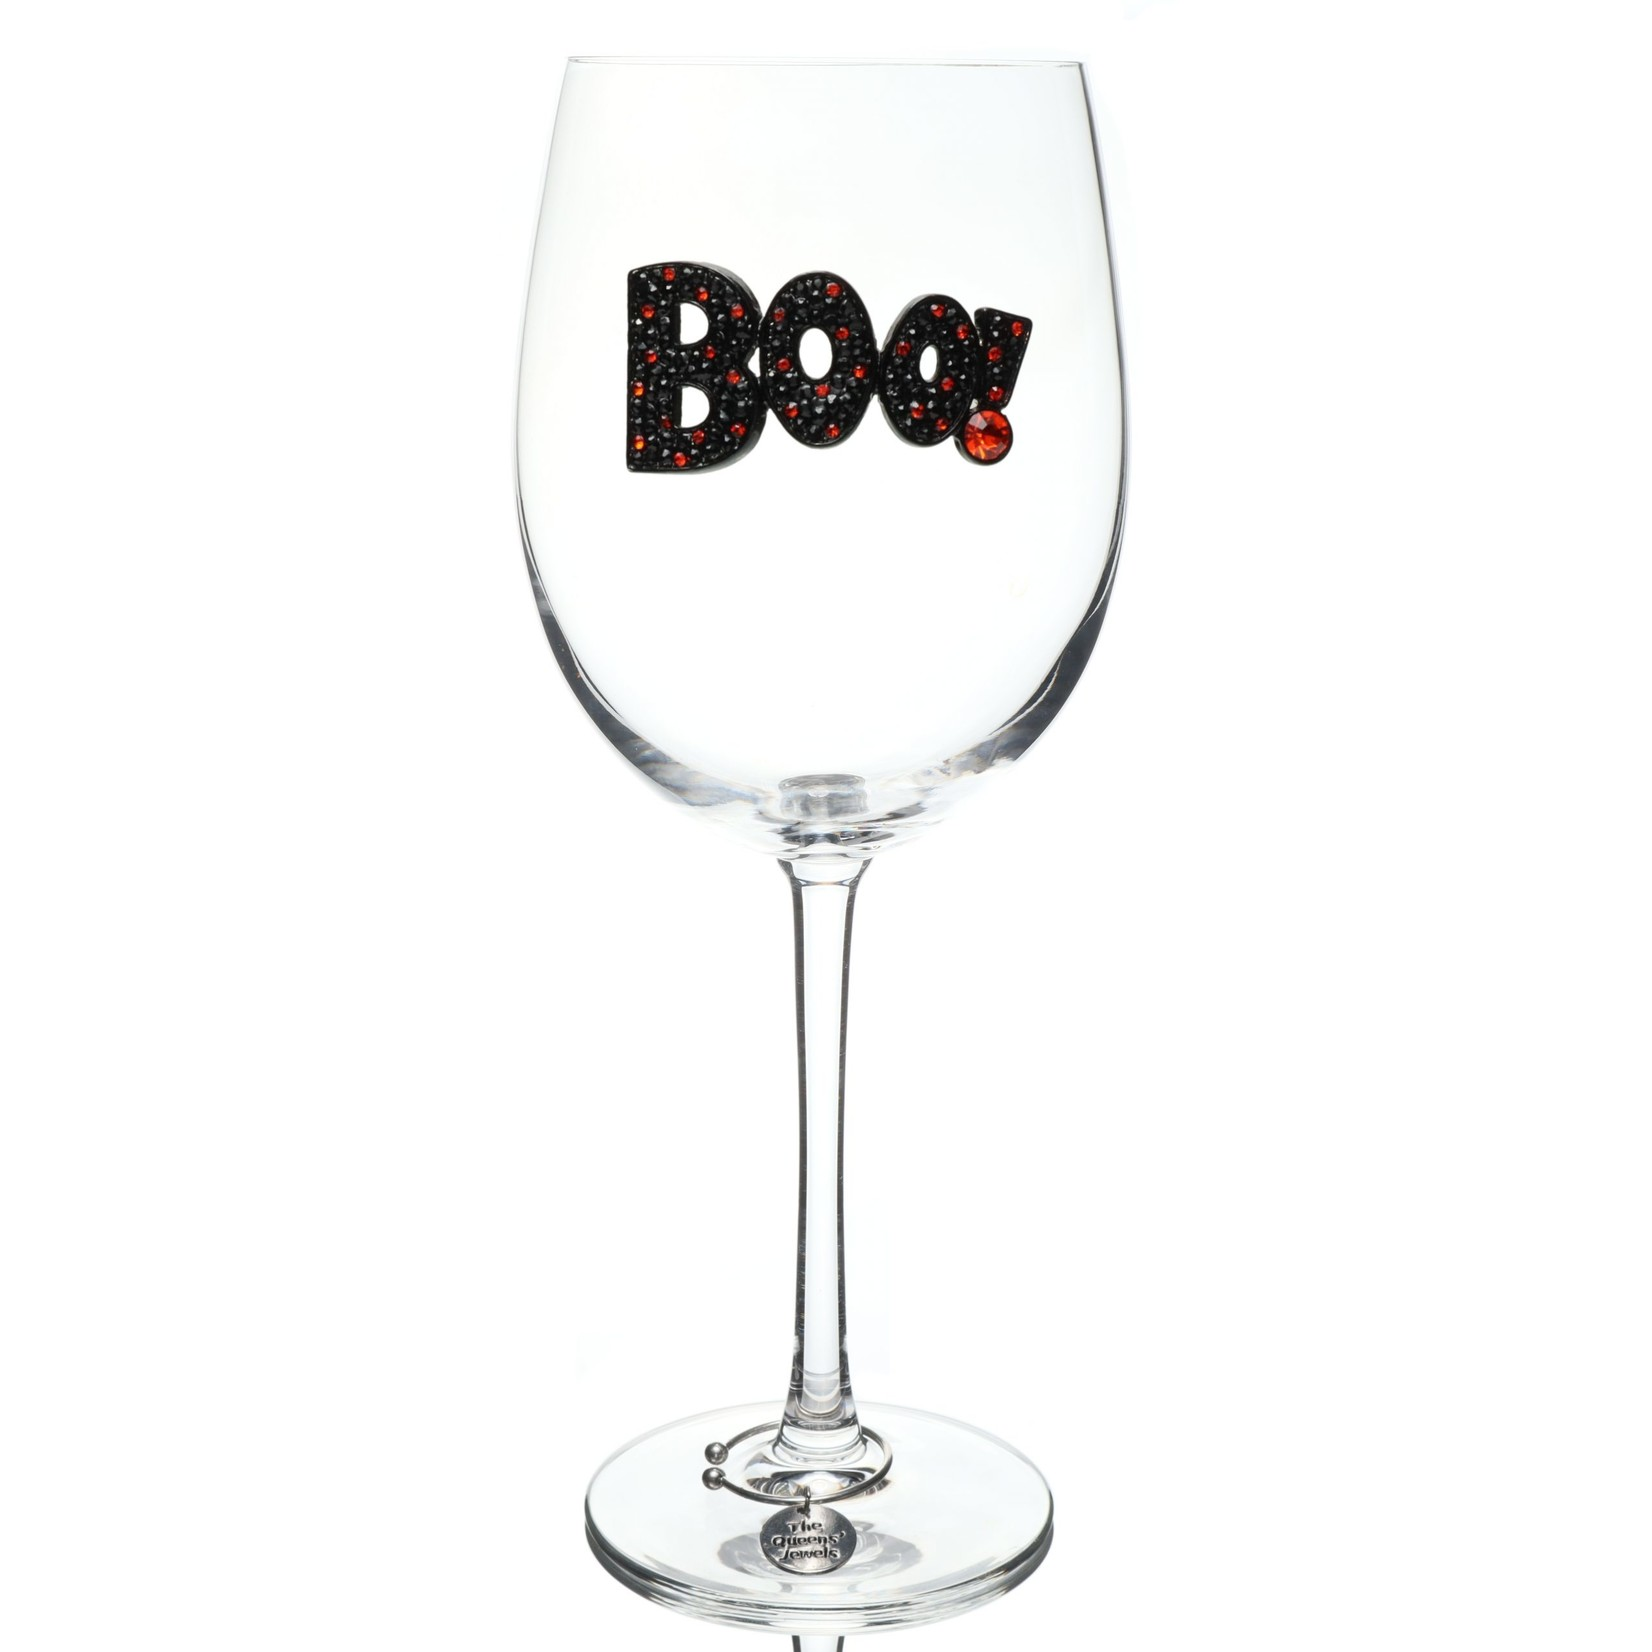 The Queen's Jewels Boo Stemmed Wine Glass